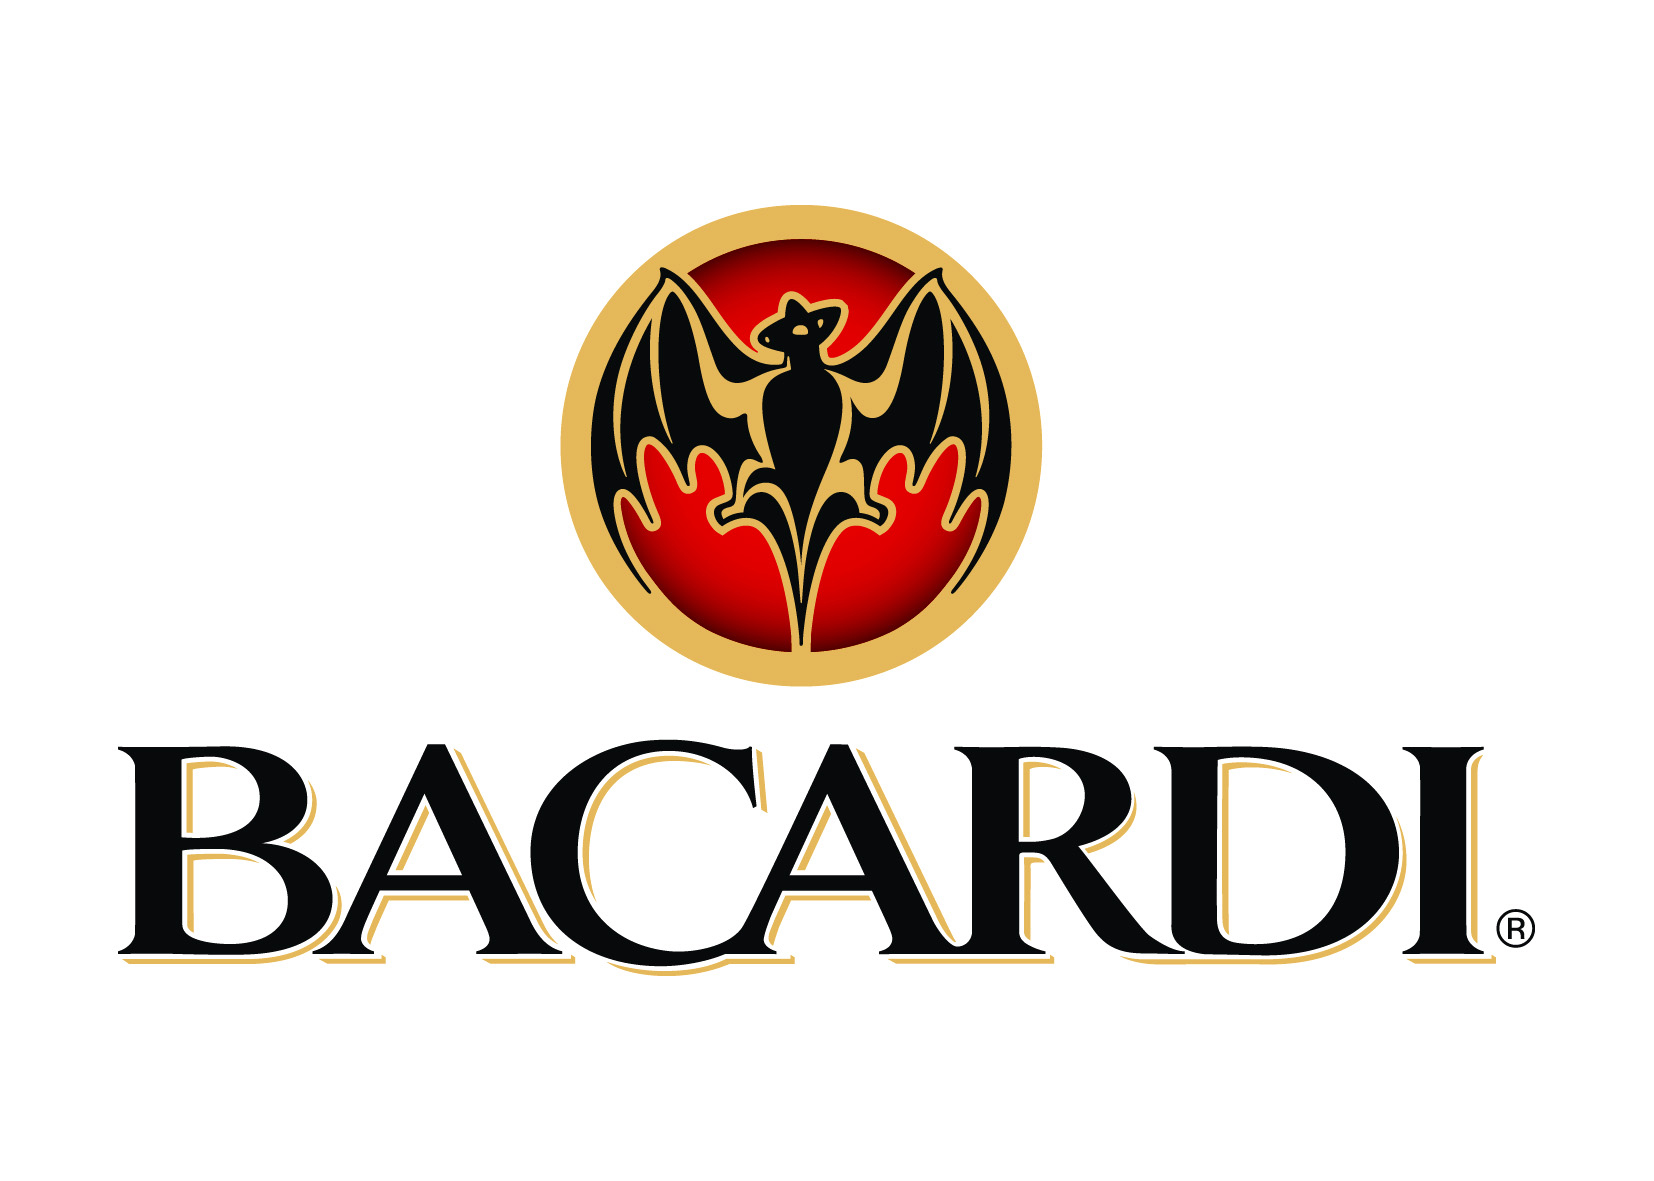 Bacardi logo Wallpaper